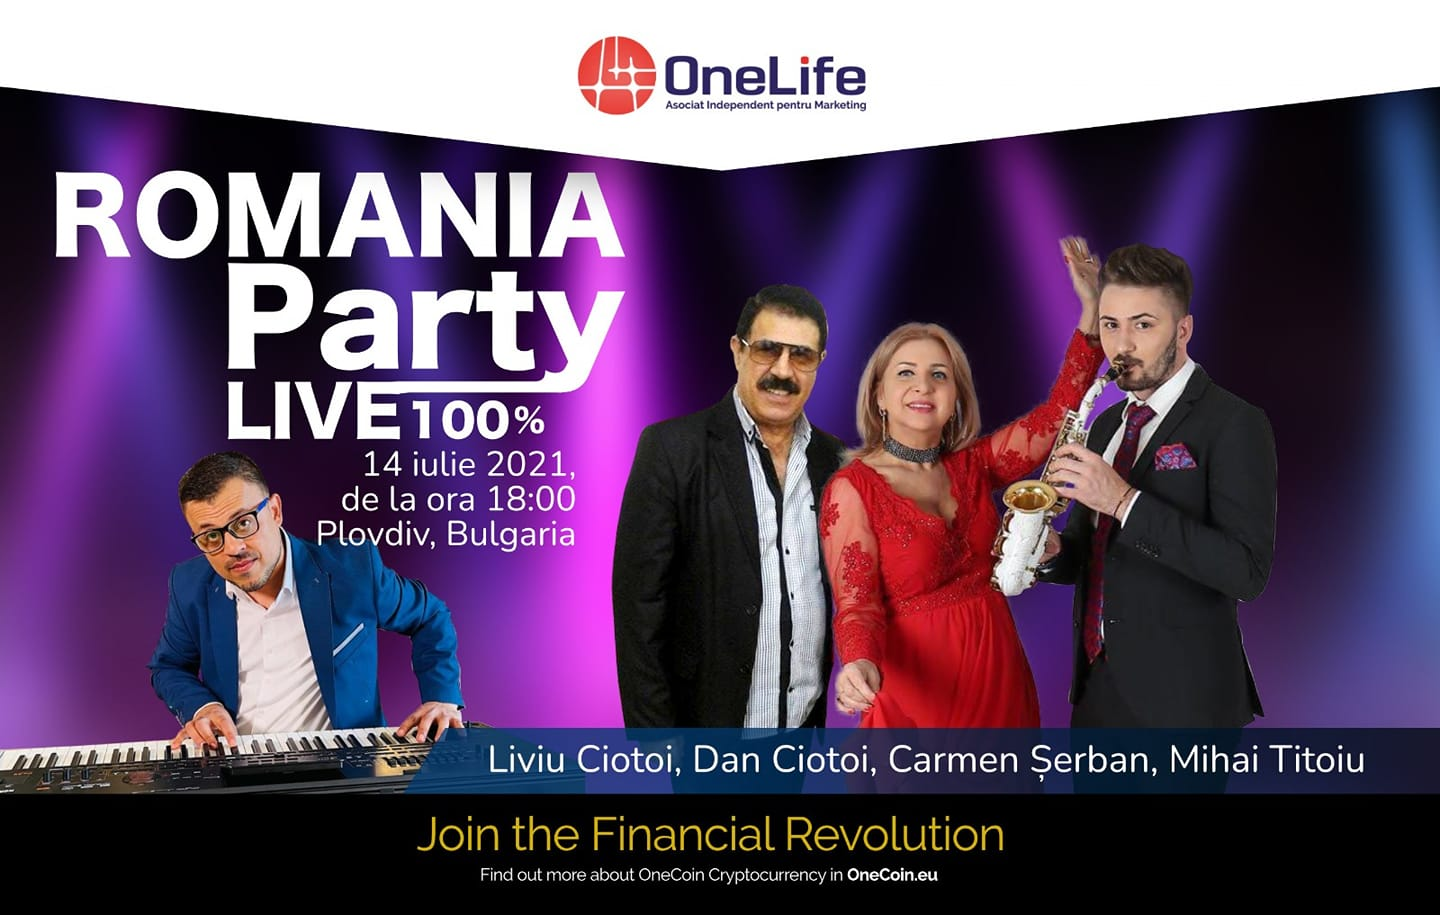 The Ryse of ONE Ecosystem. Cel mai mare eveniment OneLife din 2021 213078638 4335412536508355 5255000008075589568 n